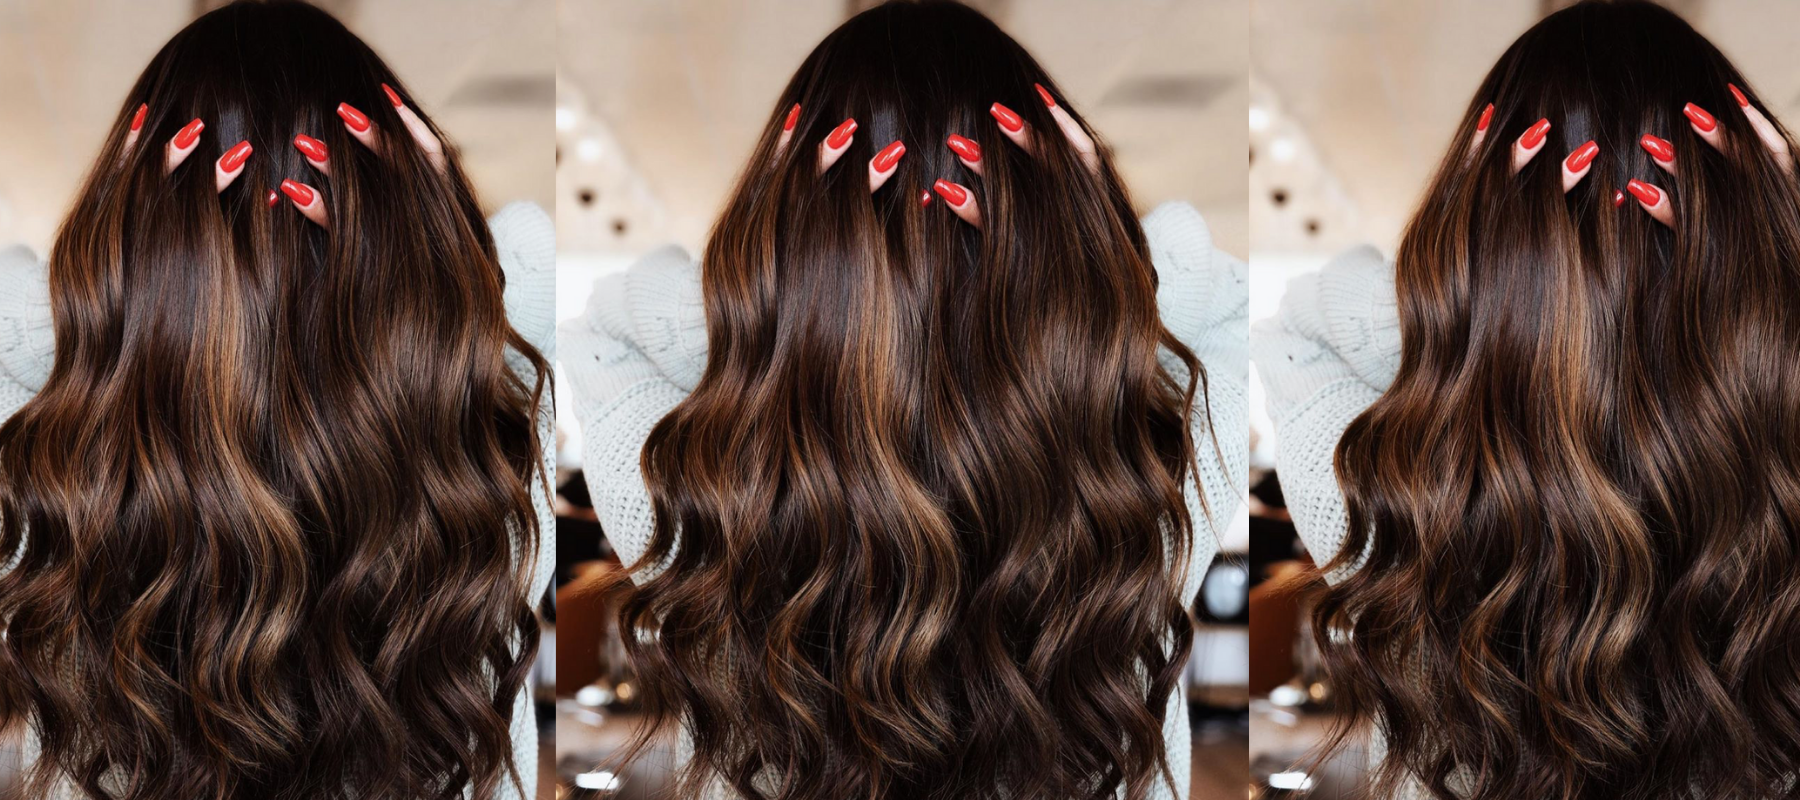 10 Brunette Inspo Looks for Fall